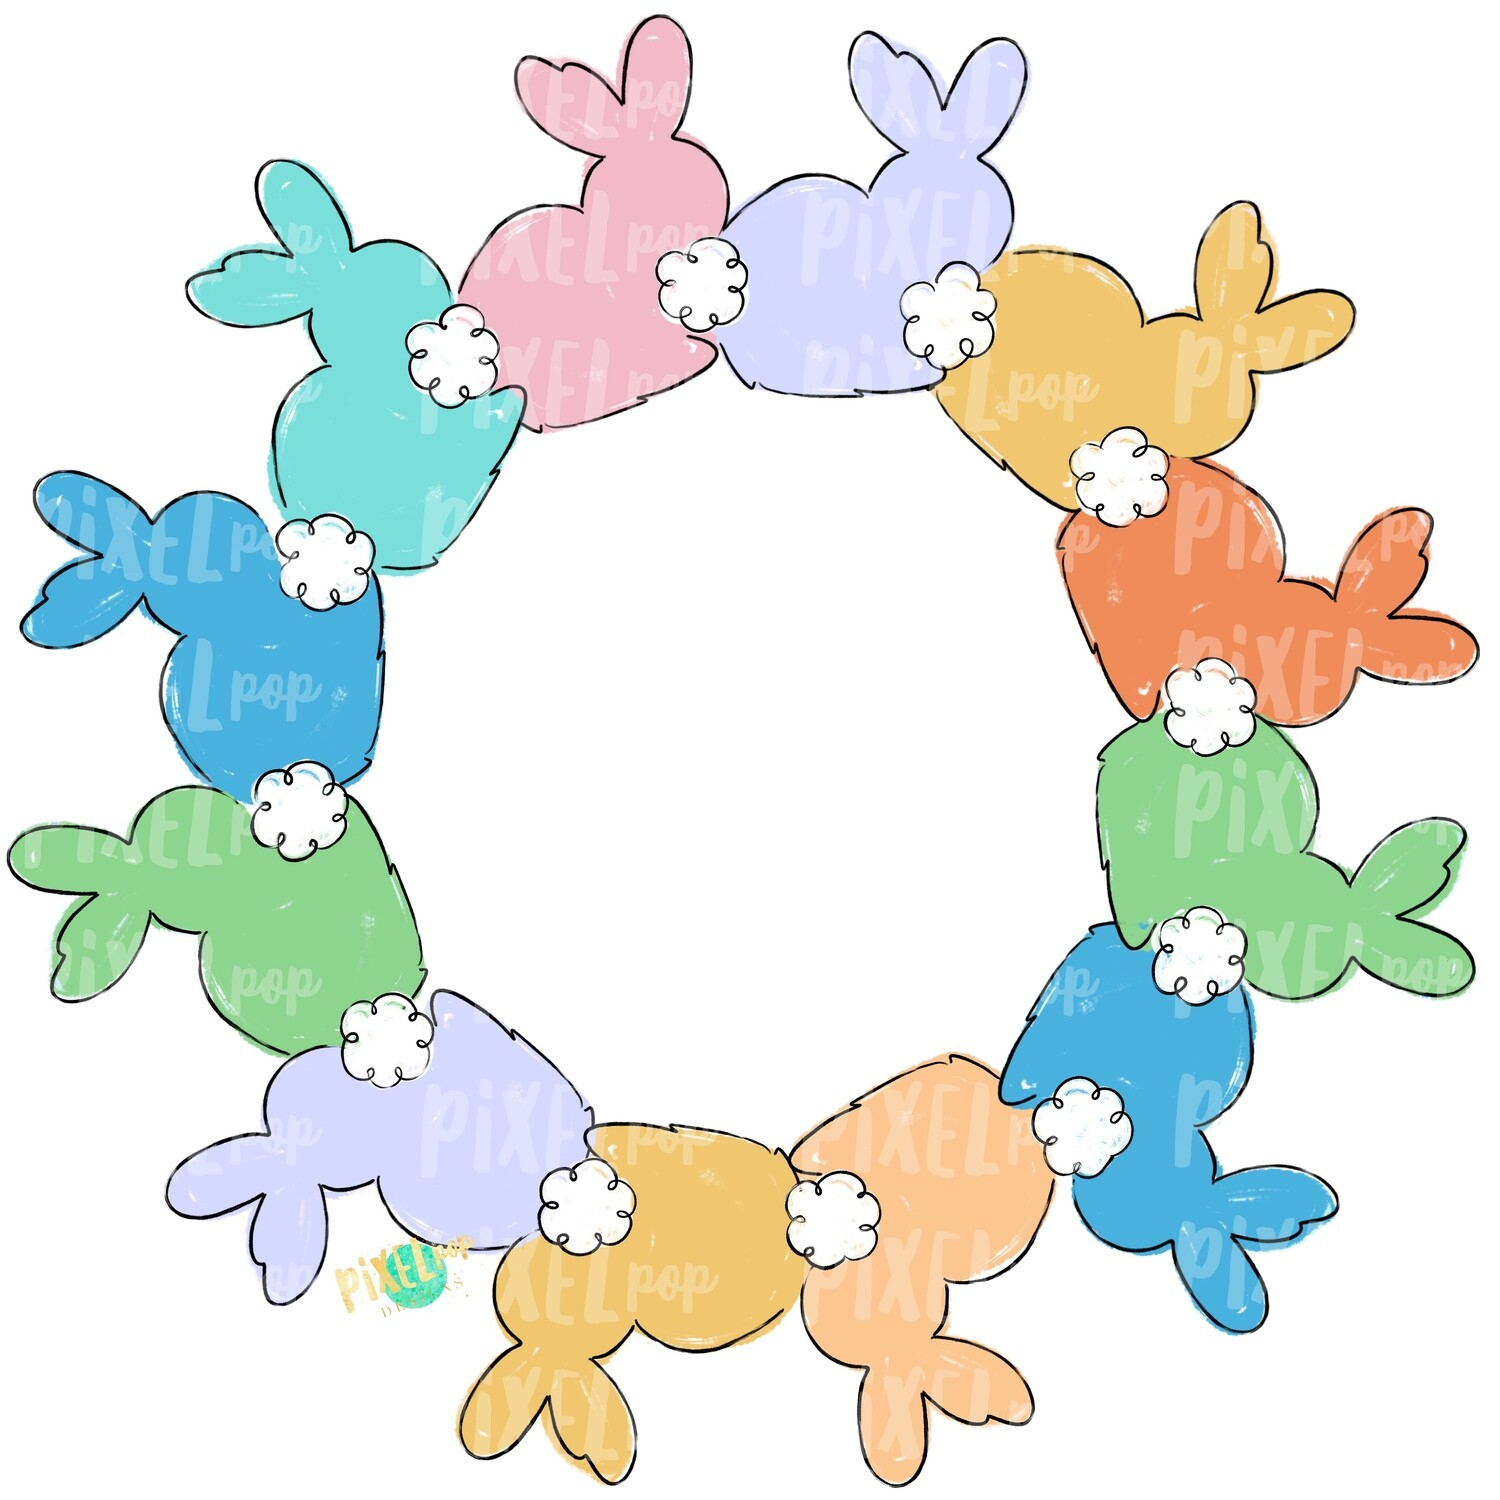 Bunnies in Circle Wreath PNG | Easter Bunny | Easter | Rabbit | Hop | Bunny PNG | Bunny Design | Bunny Tail | Easter Design | Easter PNG